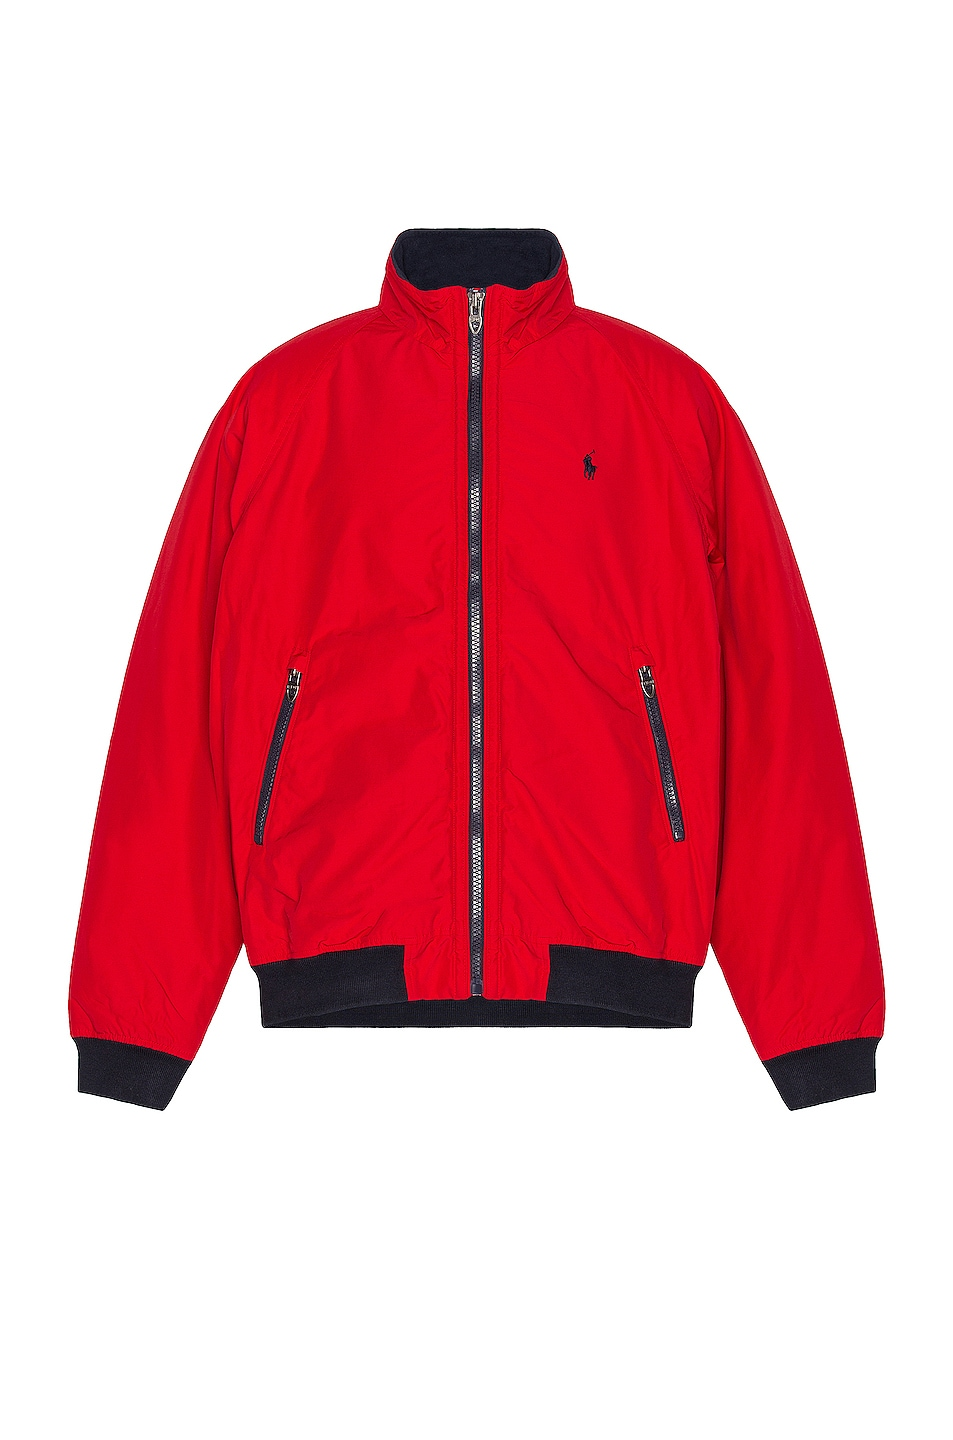 Image 1 of Polo Ralph Lauren Portage Jacket in RL 2000 Red